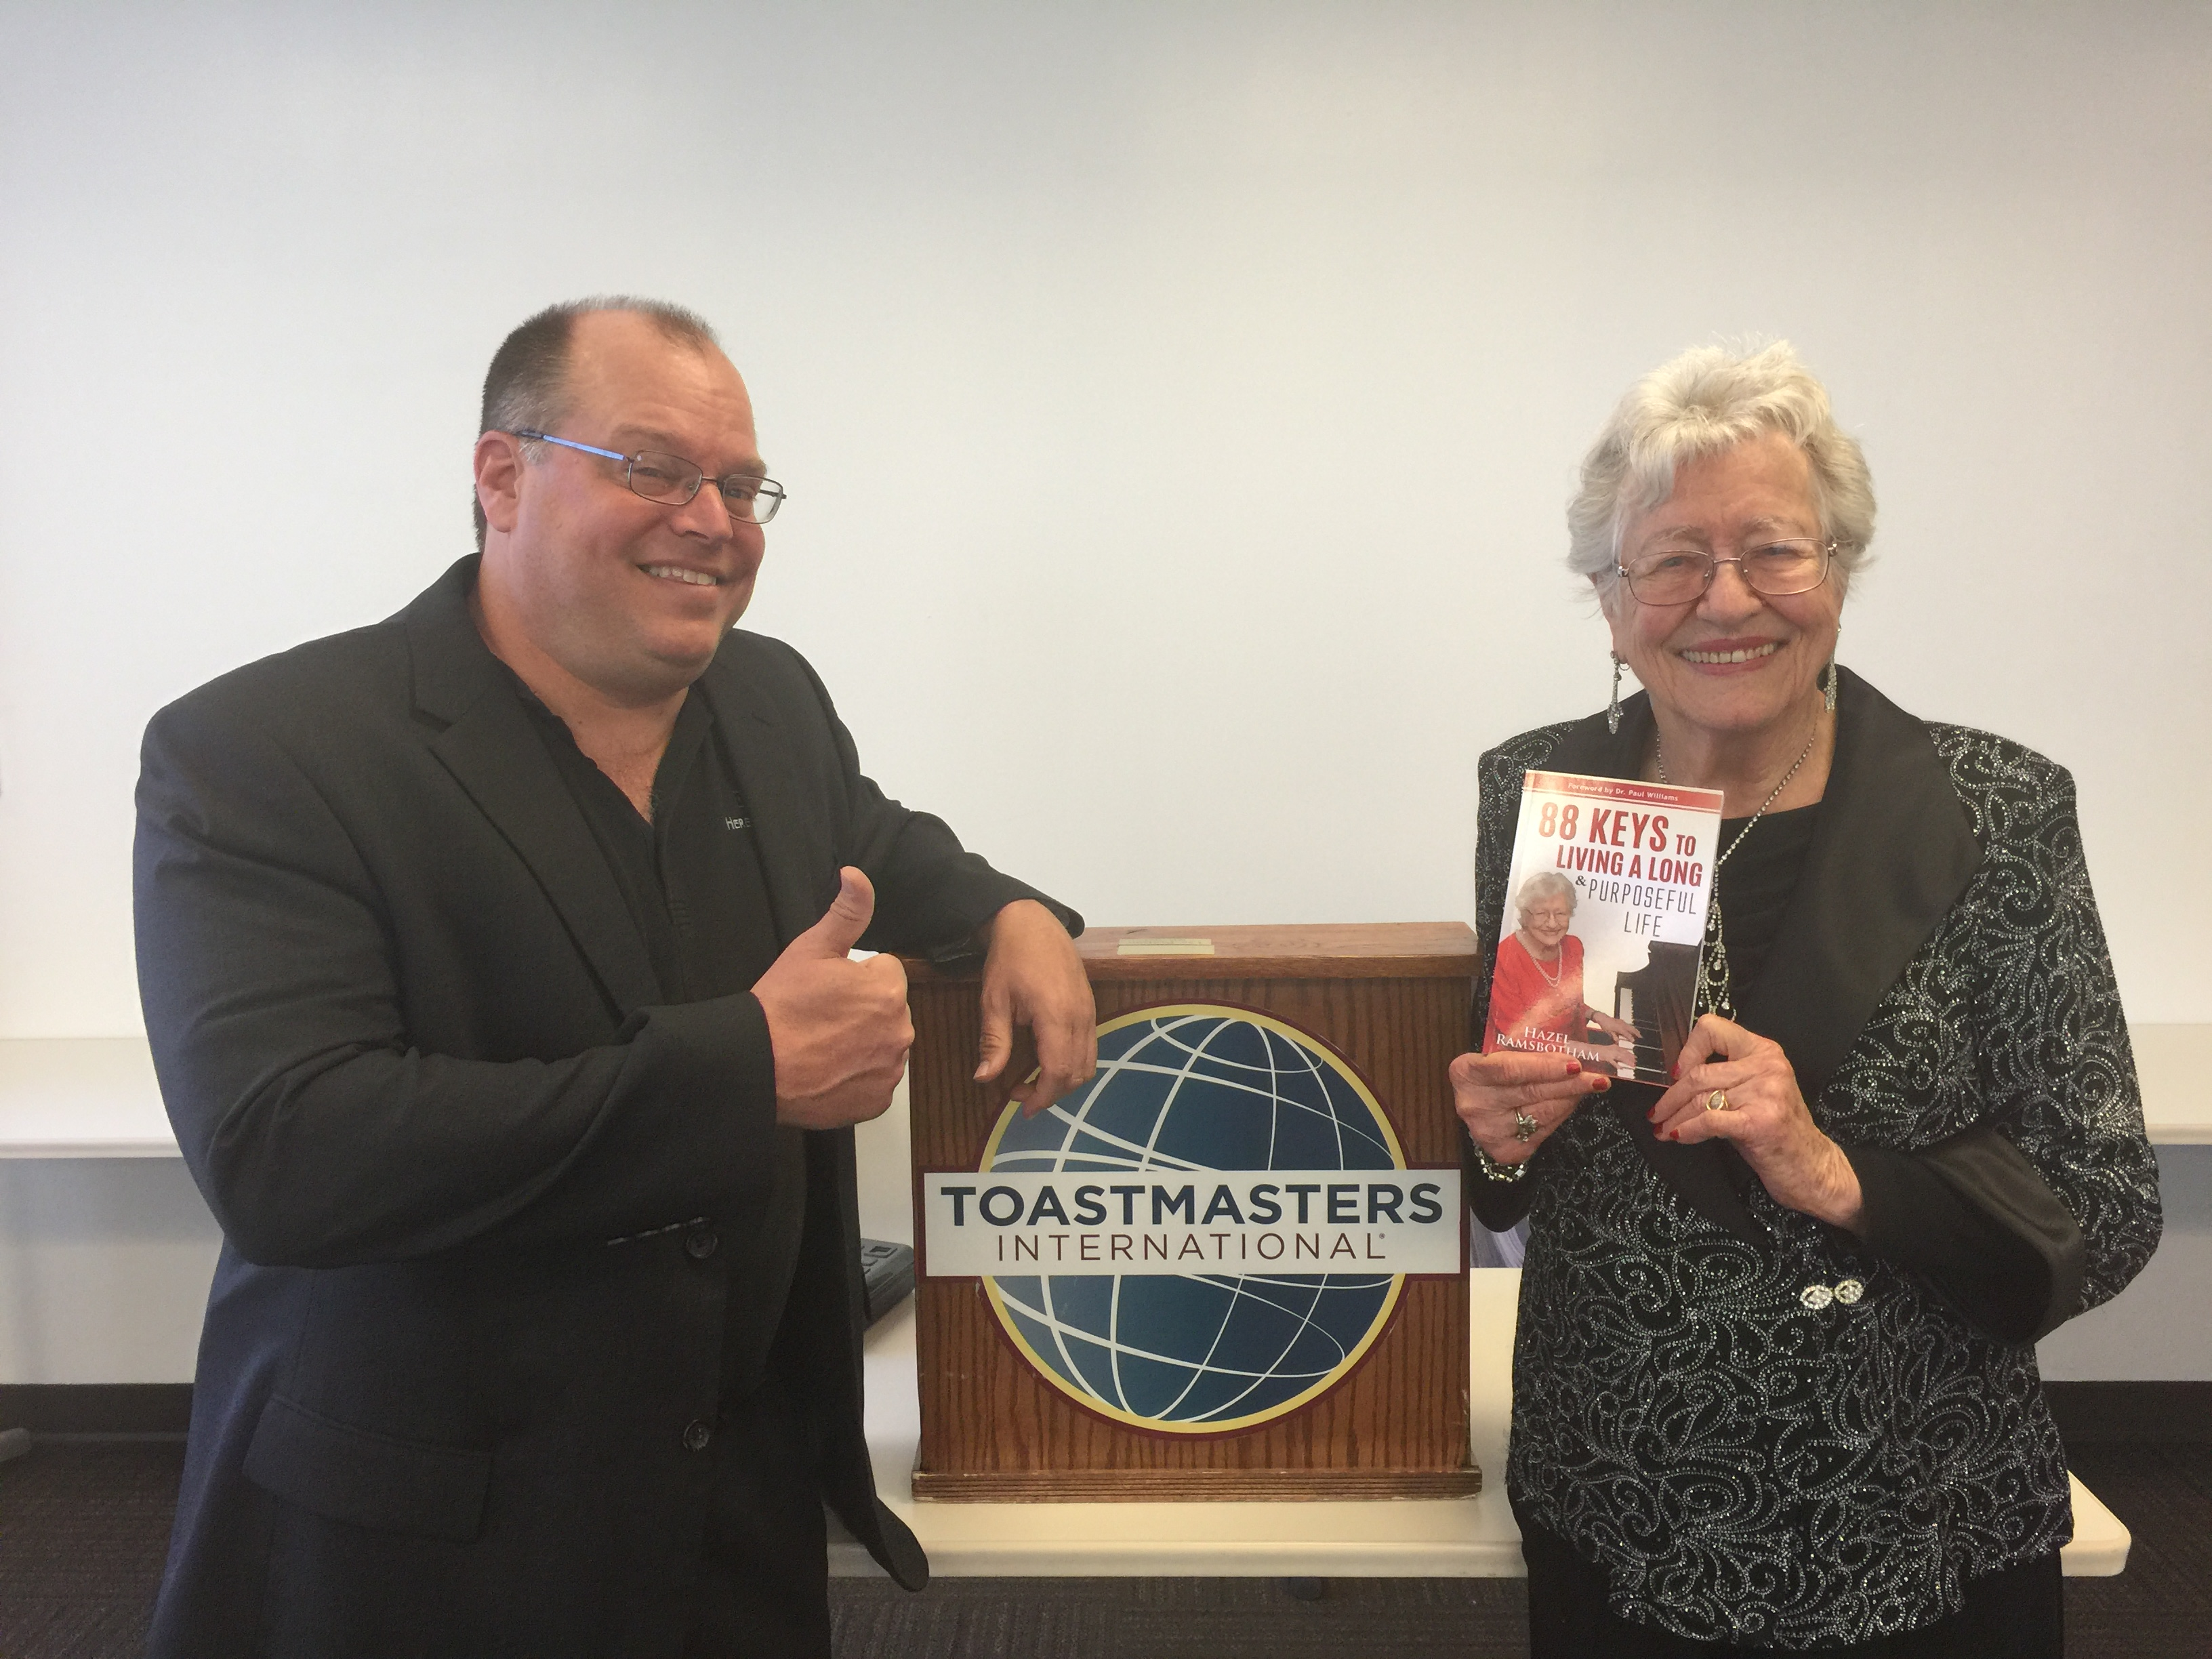 Marty Dickinson with speaker and author of the book, 88 Keys to Living a Long and Purposeful Life, Hazel Ramsbotham